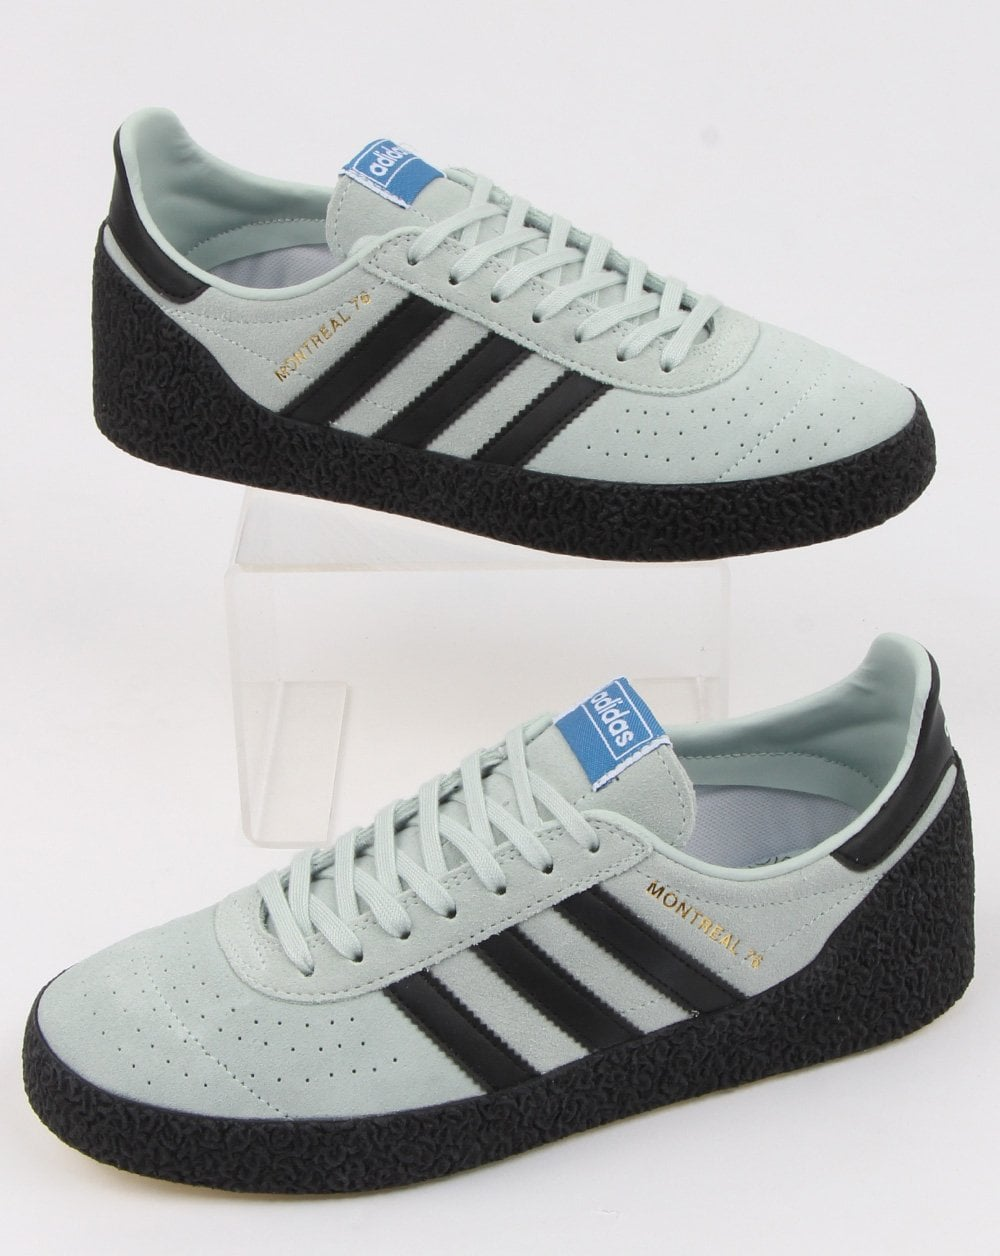 best sneakers a8888 8e2e5 adidas Trainers Adidas Montreal 76 Trainers Mint Green black